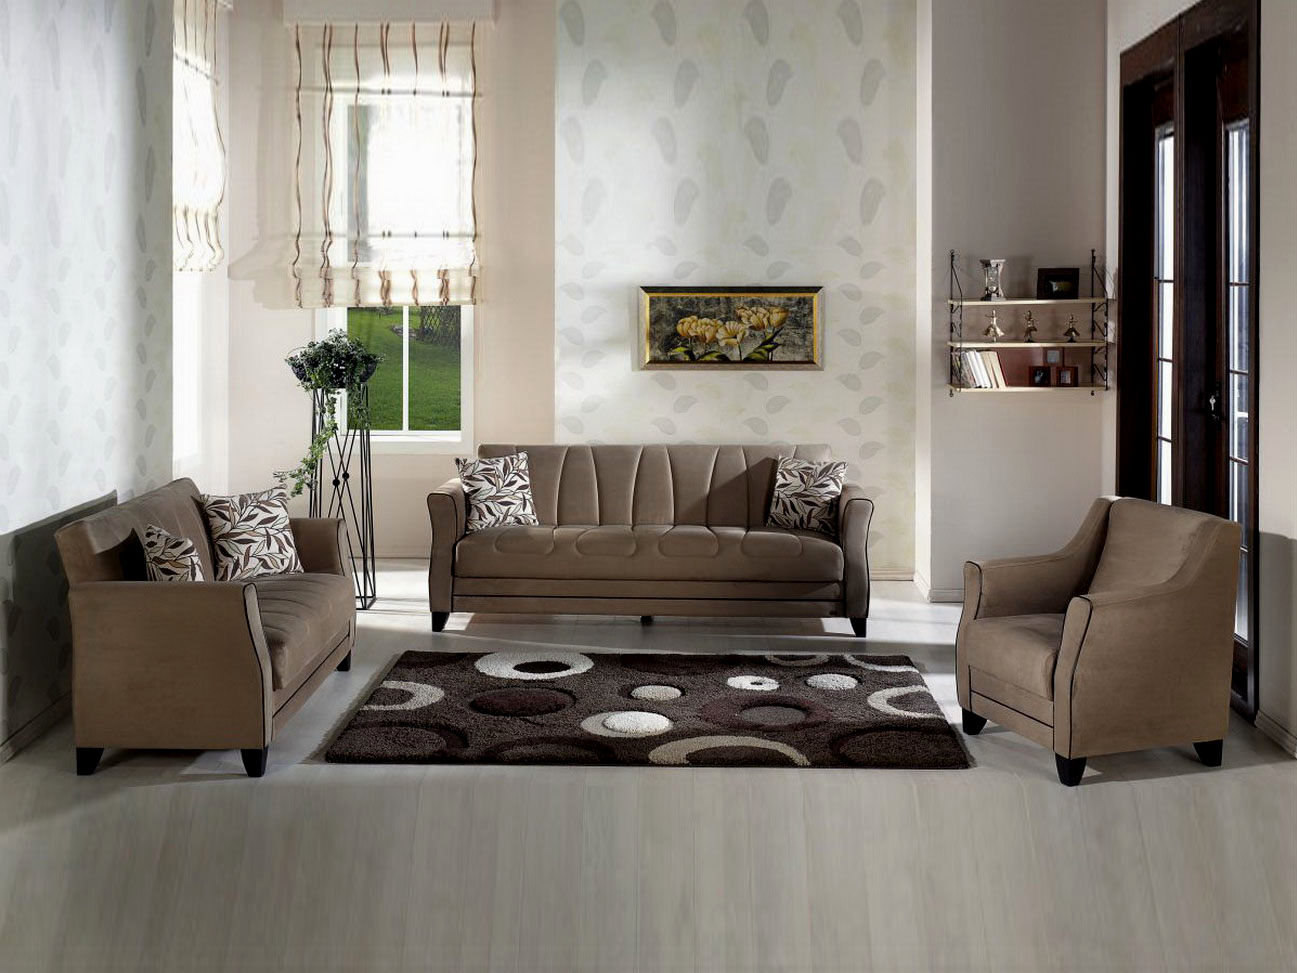 contemporary brown chesterfield sofa ideas-Excellent Brown Chesterfield sofa Gallery